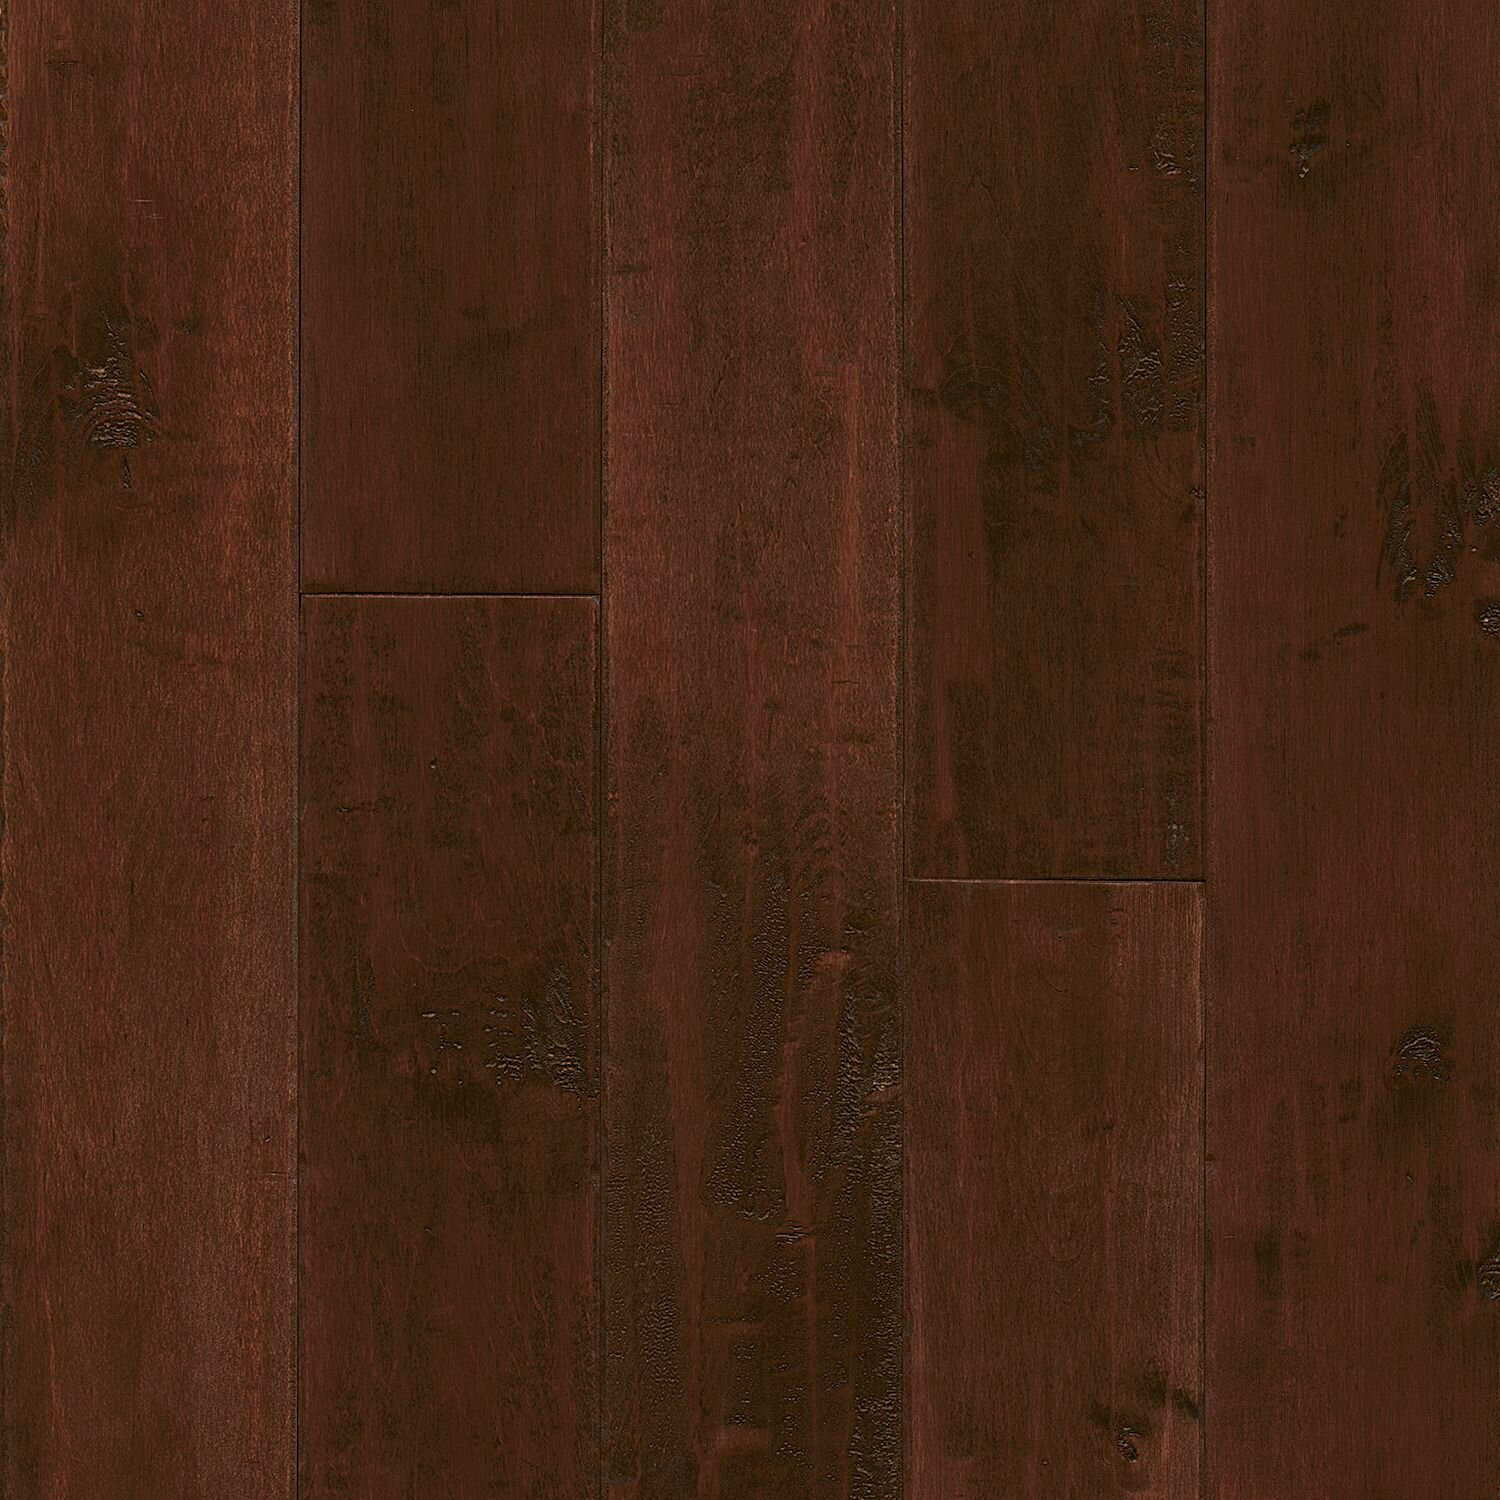 Ahf Products Maple 3 4 Thick X 5 Wide X Varying Length Solid Hardwood Flooring Wayfair